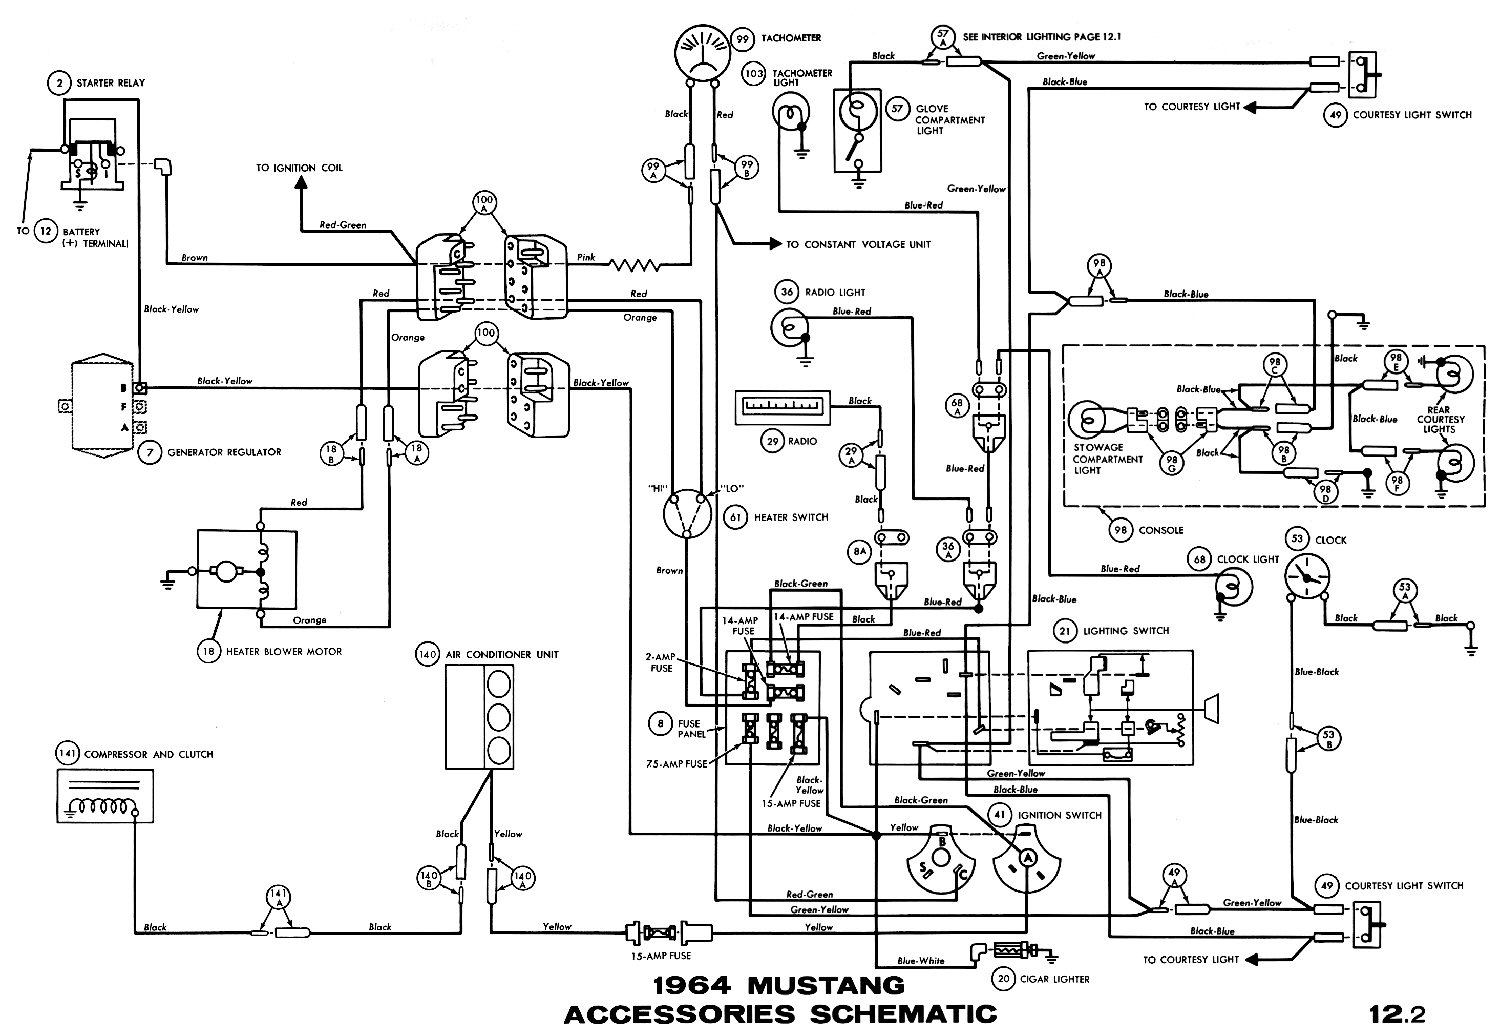 1964 mustang wiring diagrams average joe restoration ac wiring schematic  1964 mustang accessories pictorial or schematic